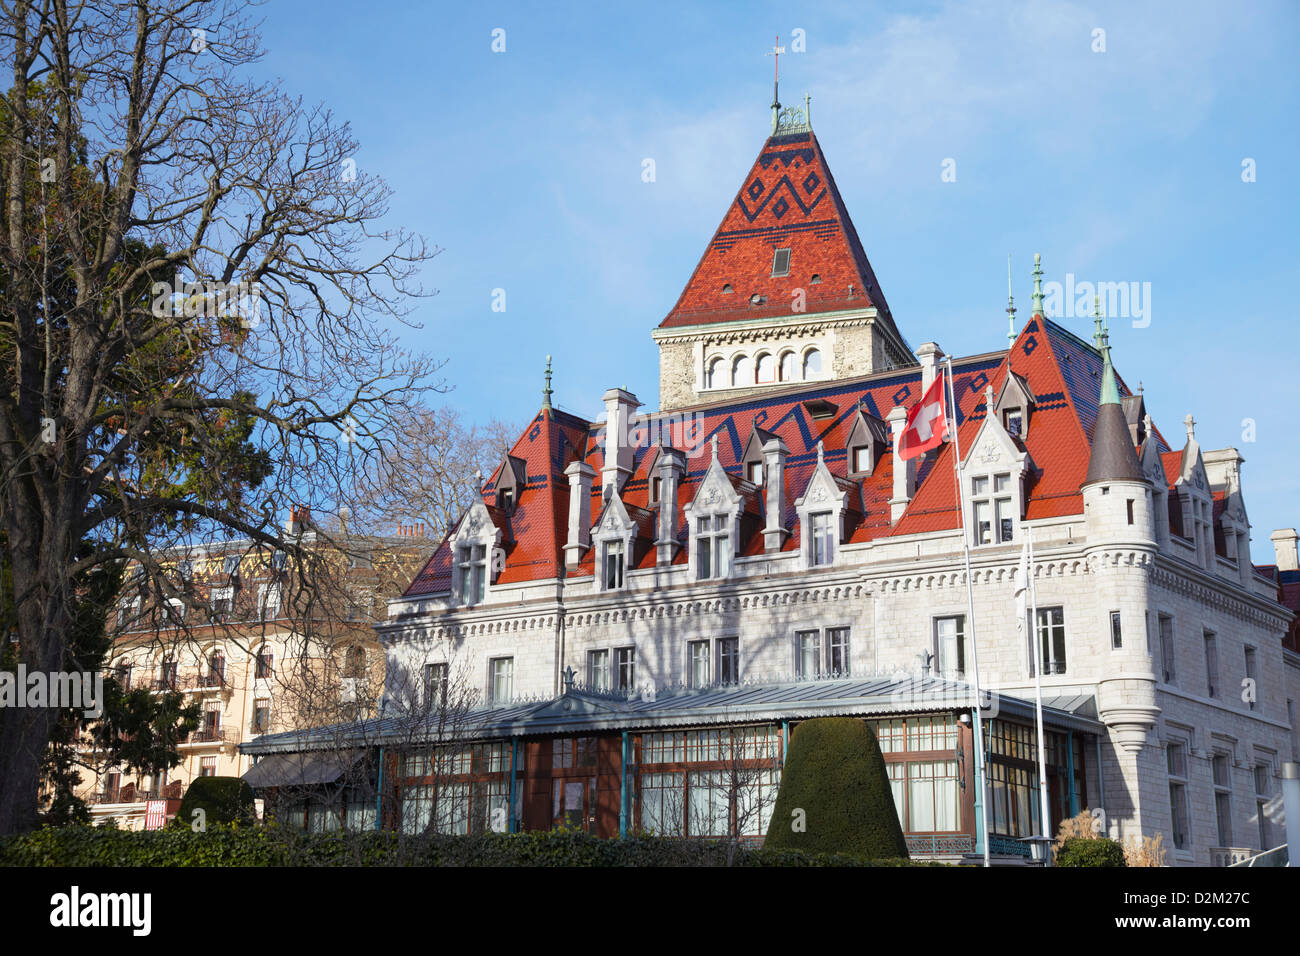 Le Chateau d'Ouchy, Ouchy, Lausanne, Vaud, Switzerland - Stock Image